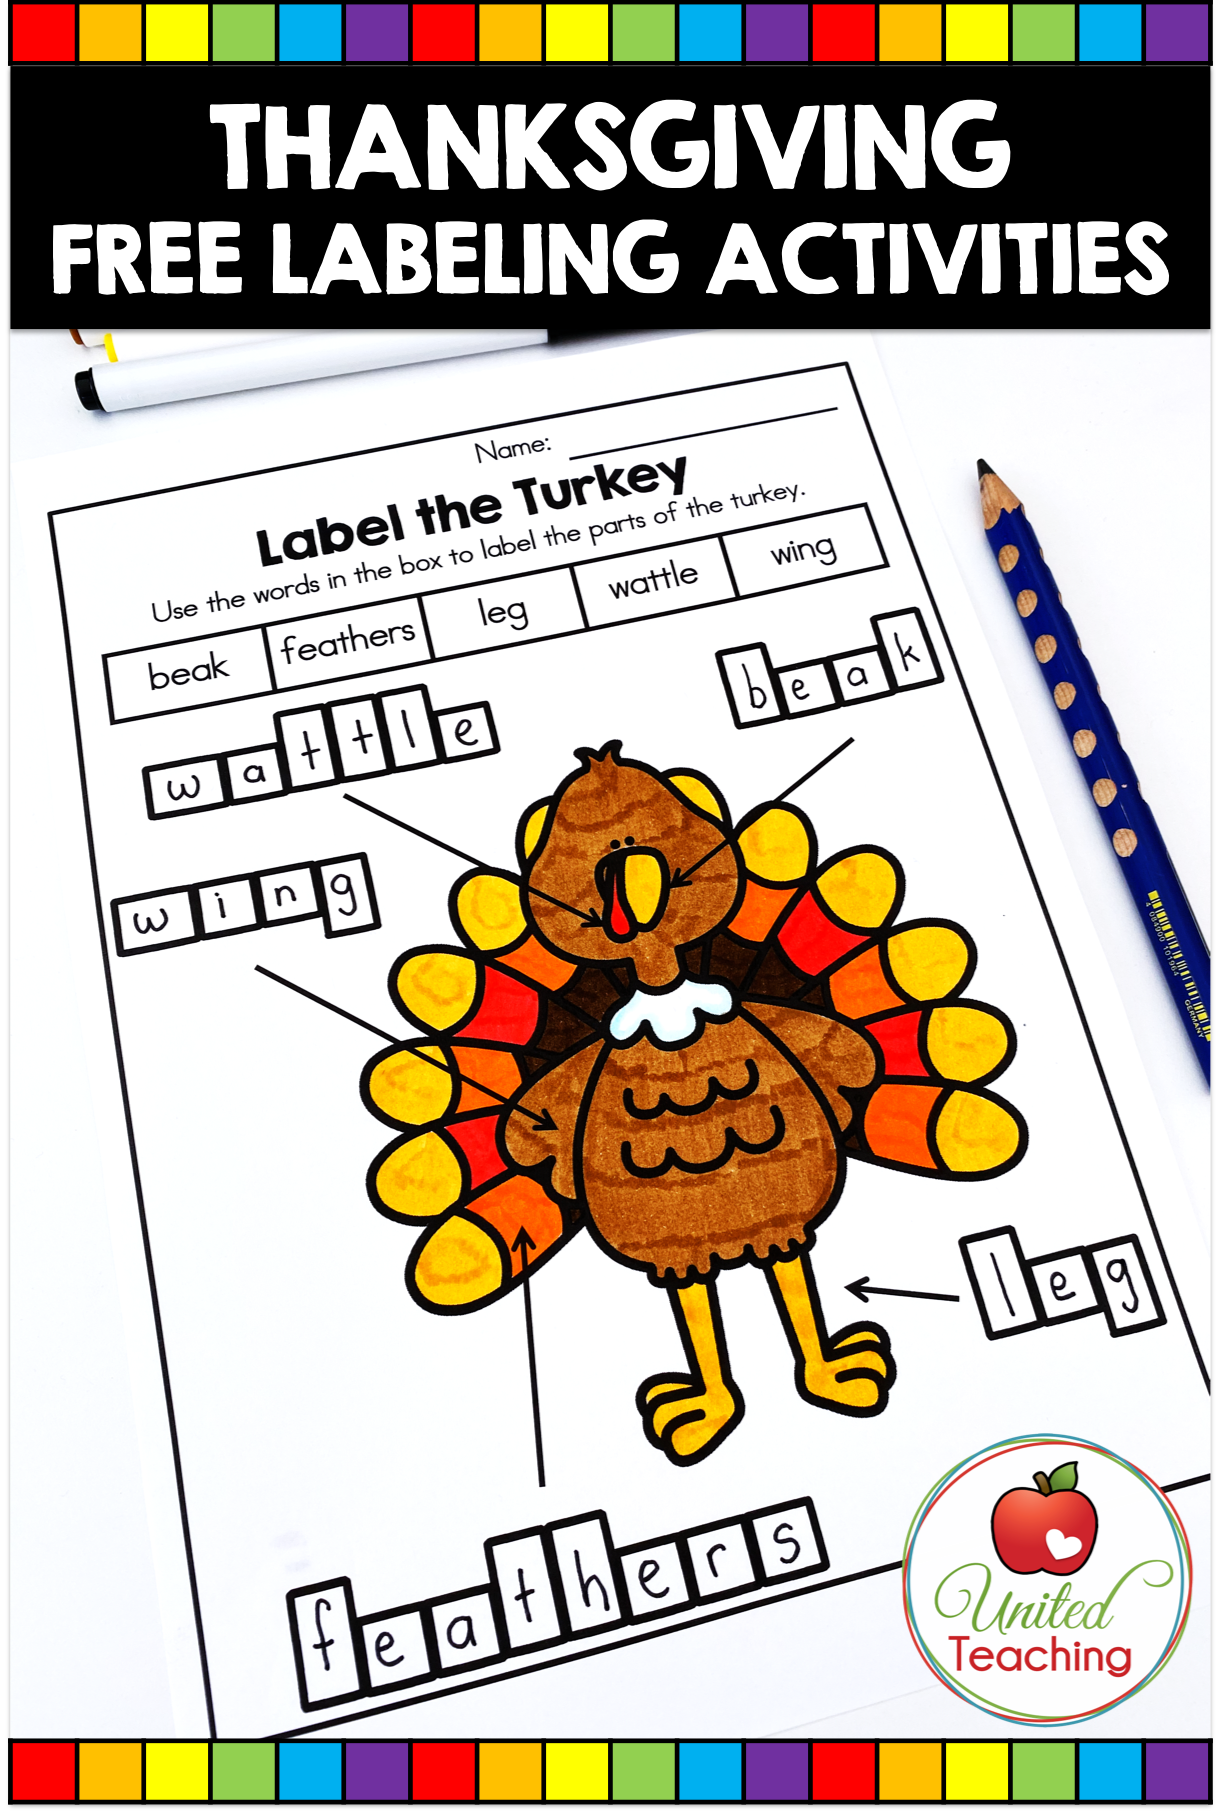 Free Thanksgiving Labeling Activities